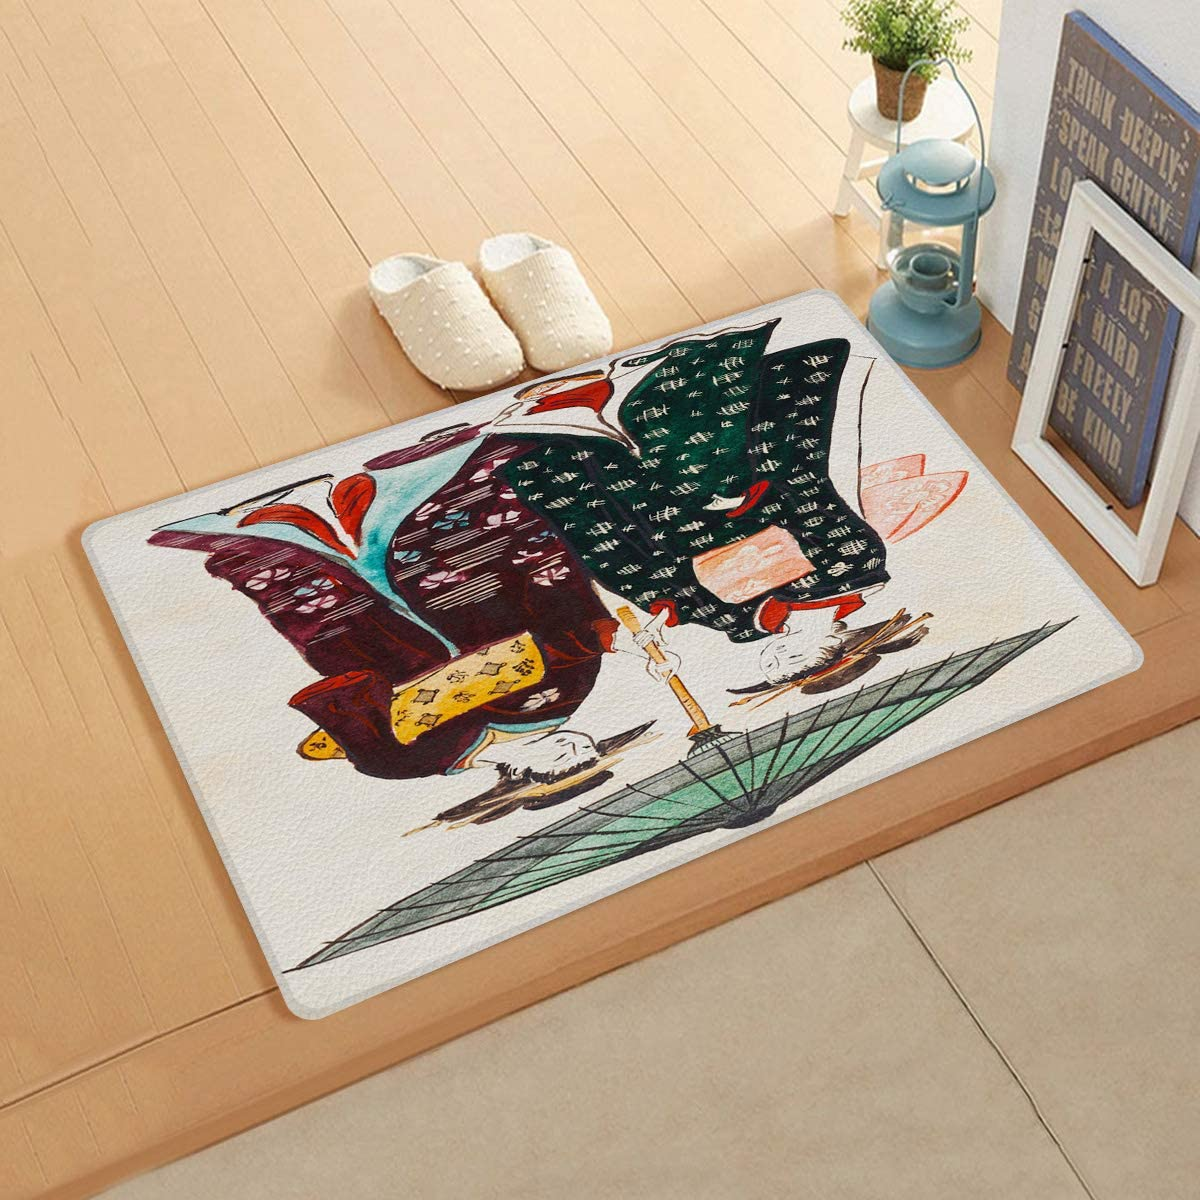 Greeeen Indoor Doormat Welcome Door Mat, 18 x 60 PVC Leather Mat Soft Non-Slip Rubber Backing, Durable, Waterproof Rug for Entrance- East Asian Classical Style Japanese Geisha Kimono Illustration